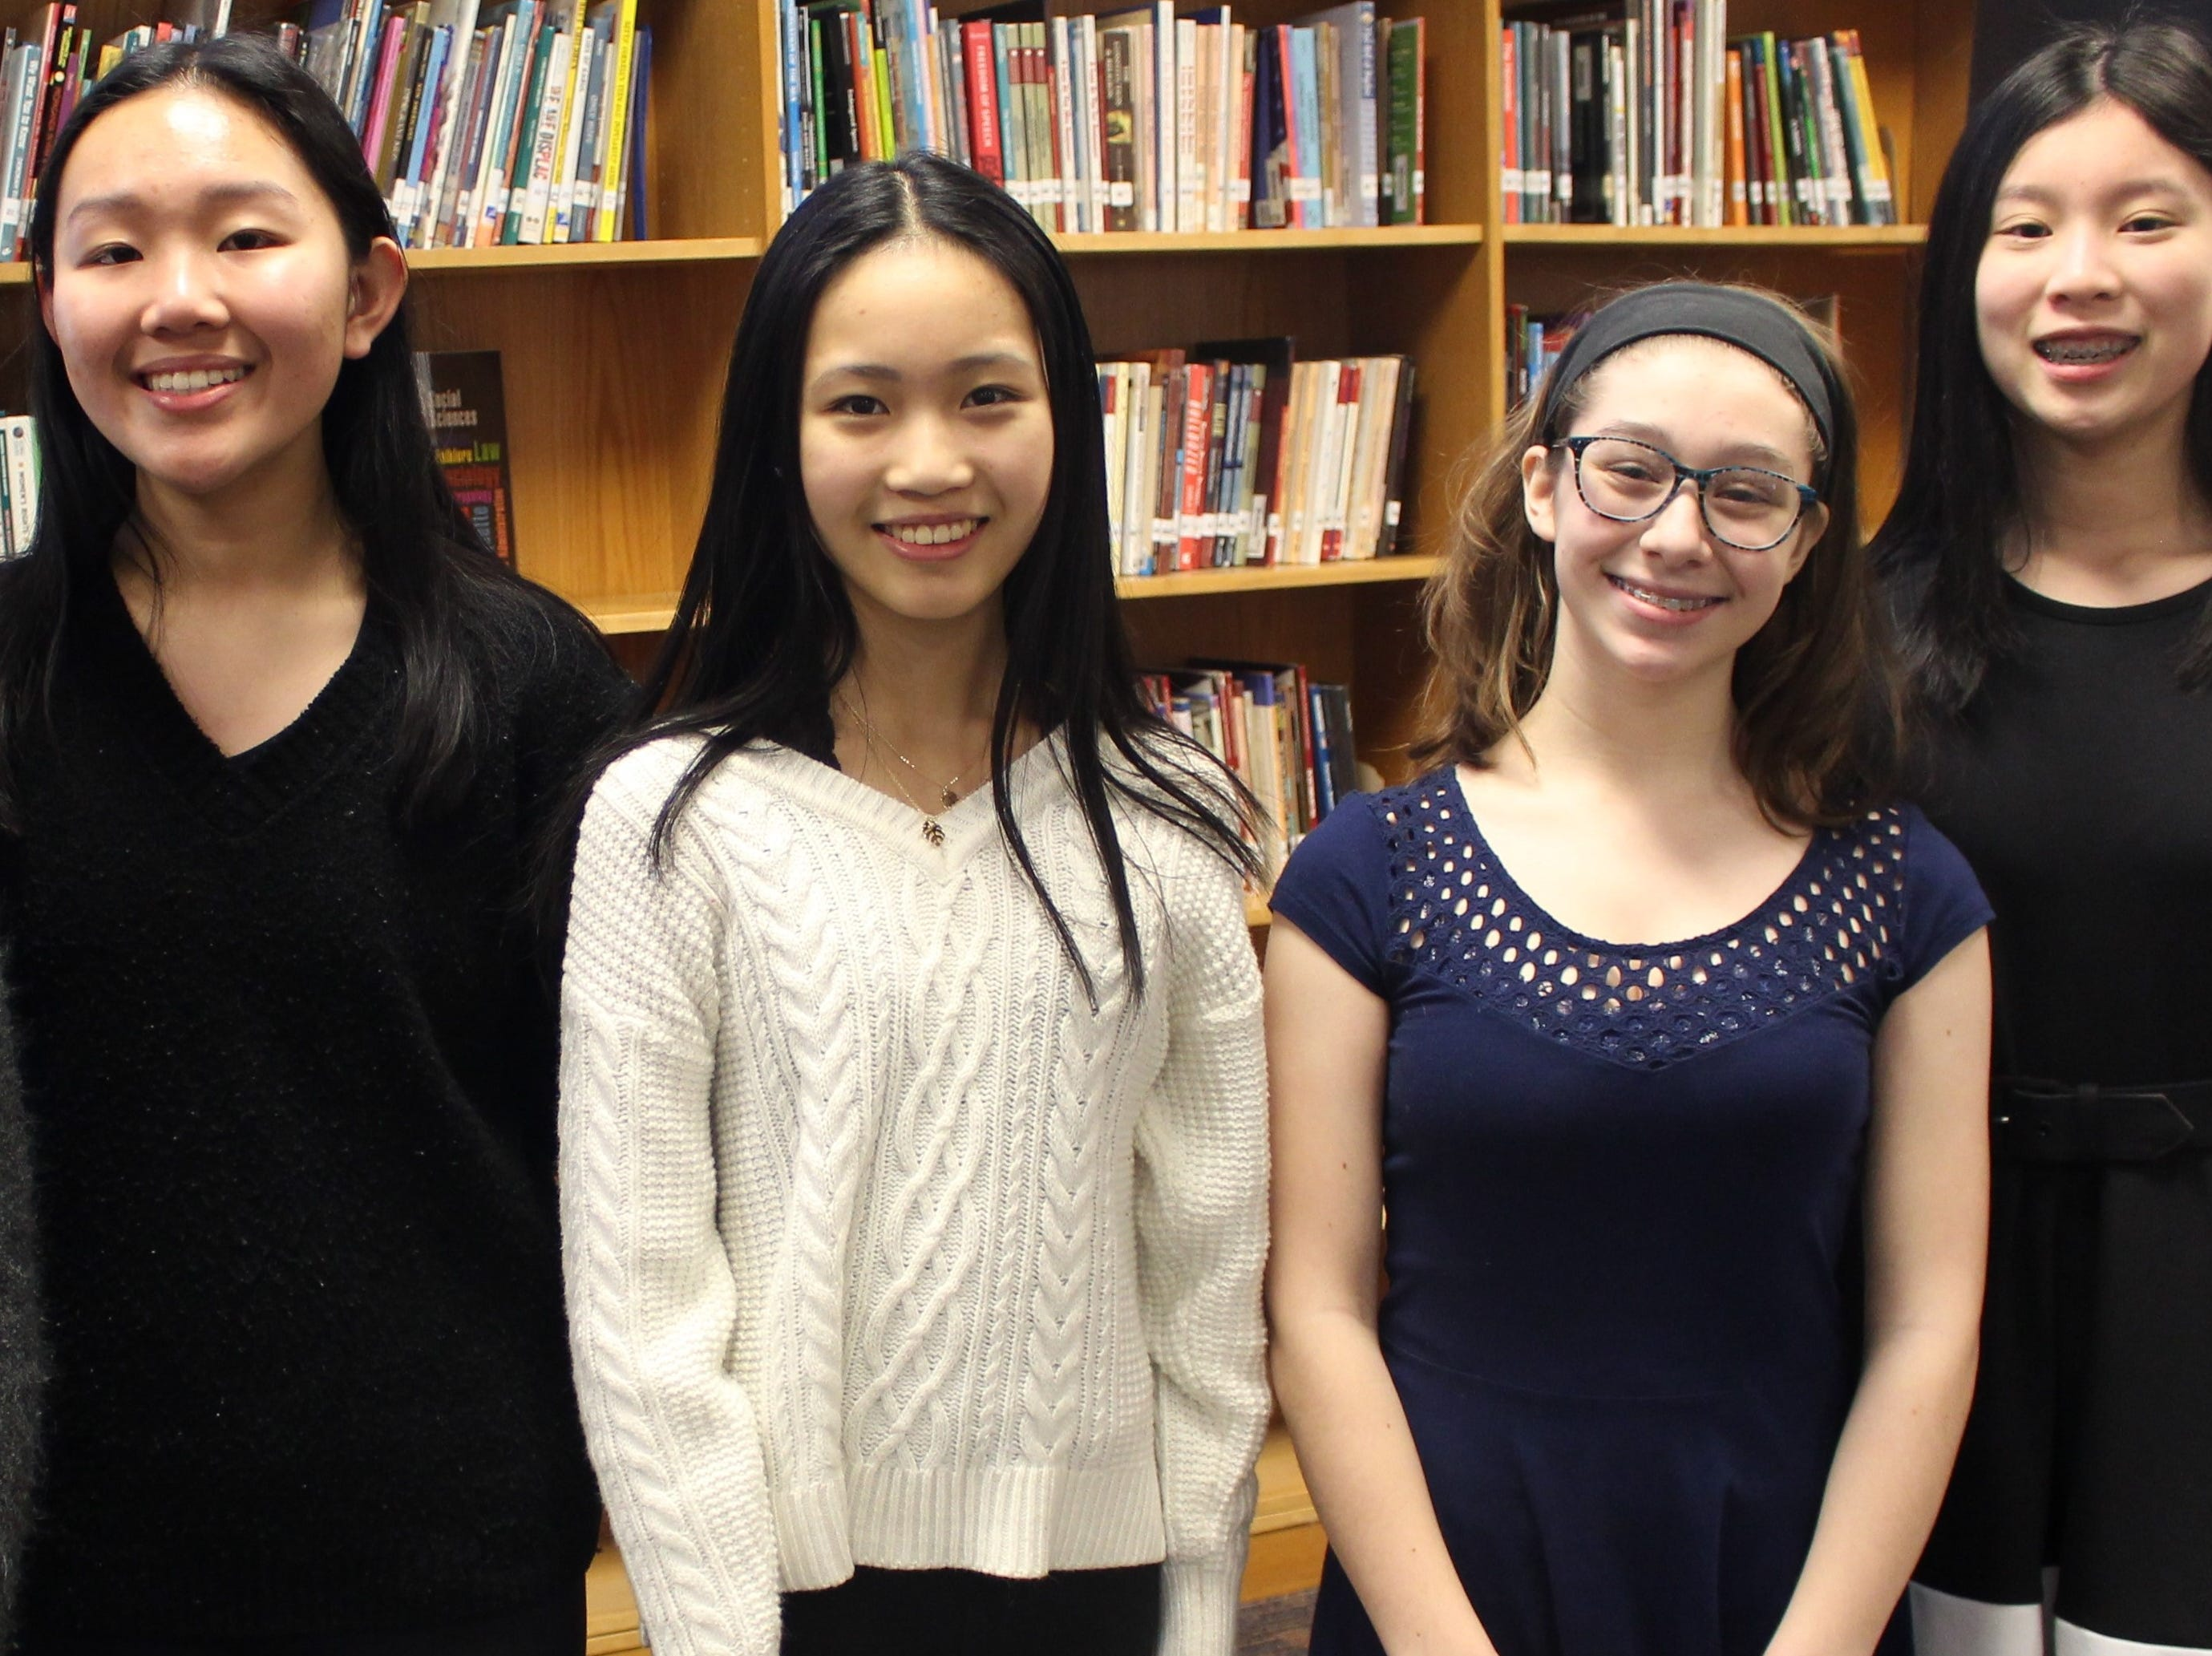 Grade 8 Warren Middle School students Angela Zhang, Cynthia Ming, Evelyn Logan and Emma Leung gave TED-Ed talks during the week of Feb. 25.